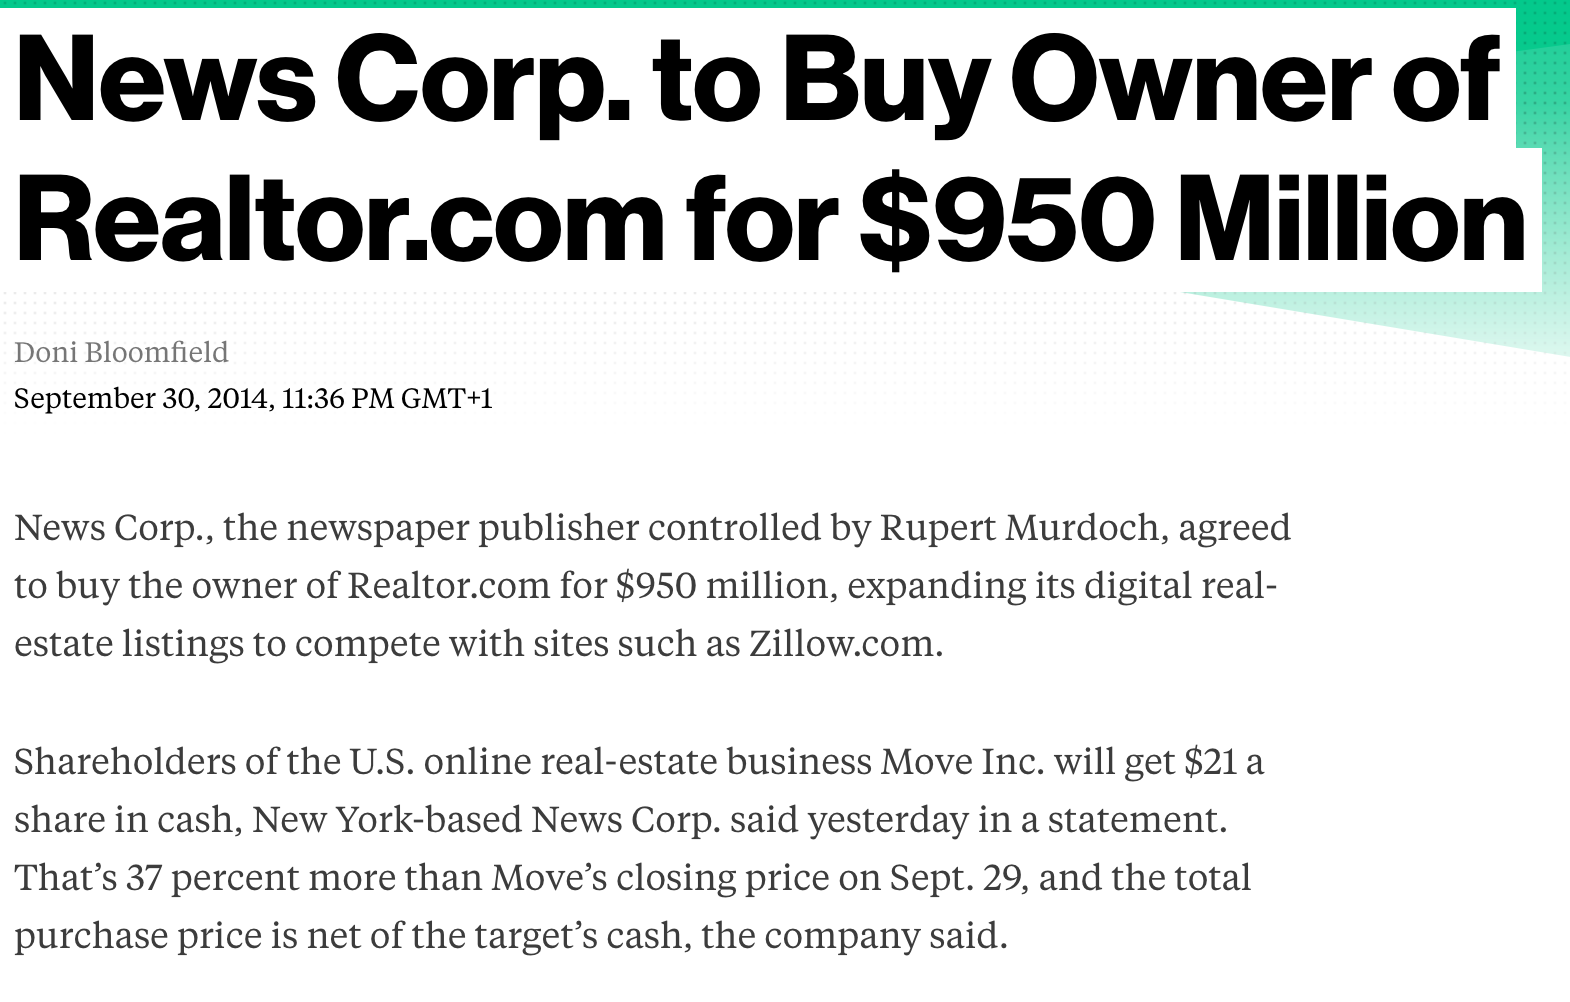 News Corp. to Buy Owner of Realtor.com for $950 Million